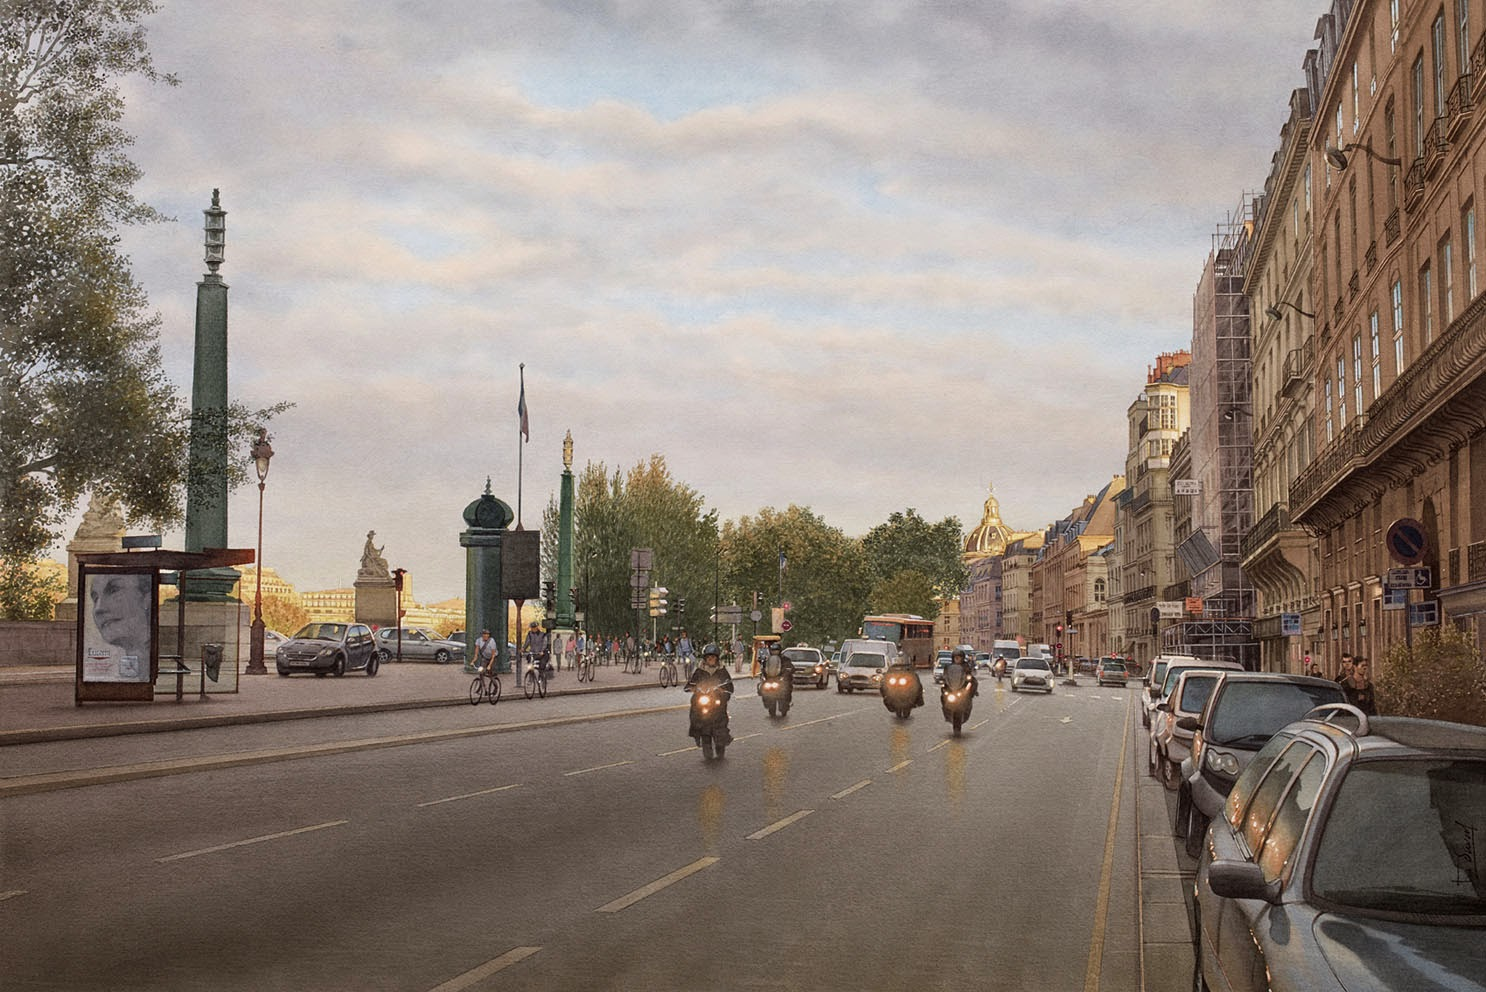 19-le-quai-Voltaire-Thierry-Duval-Snippets-of Real-Life-in Watercolor-Paintings-www-designstack-co